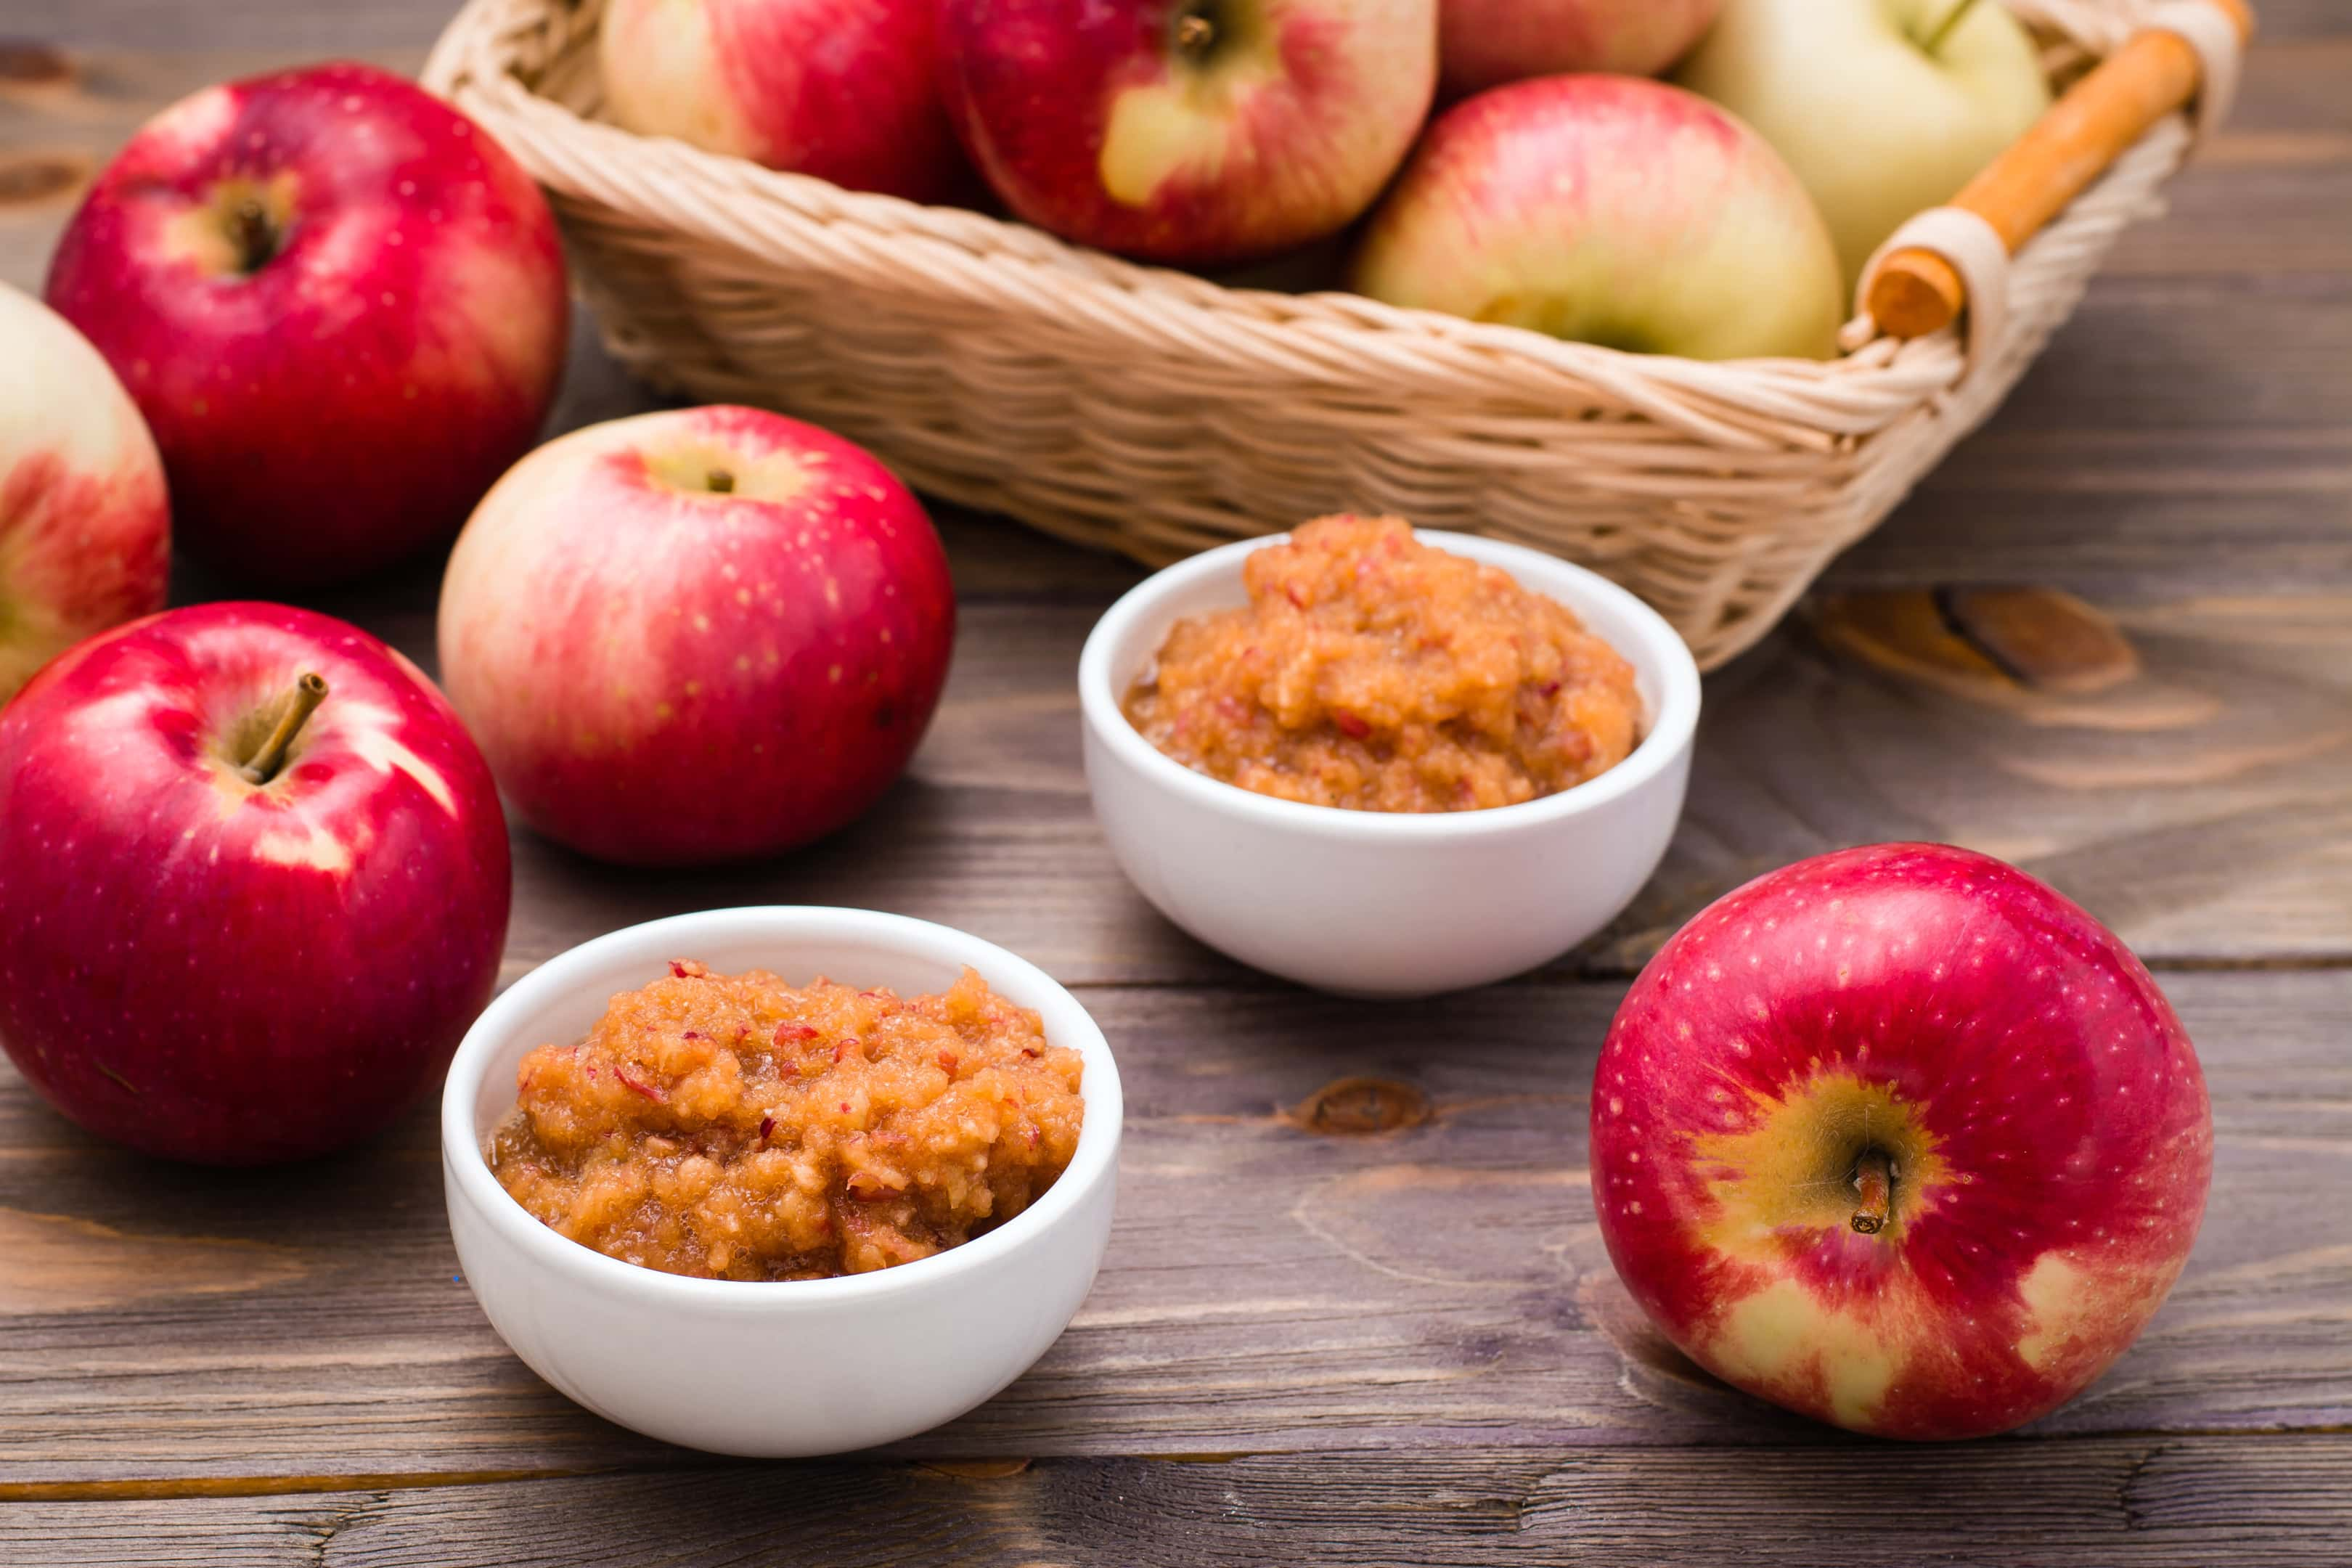 Fresh applesauce in bowls with fresh red apples on a wooden table